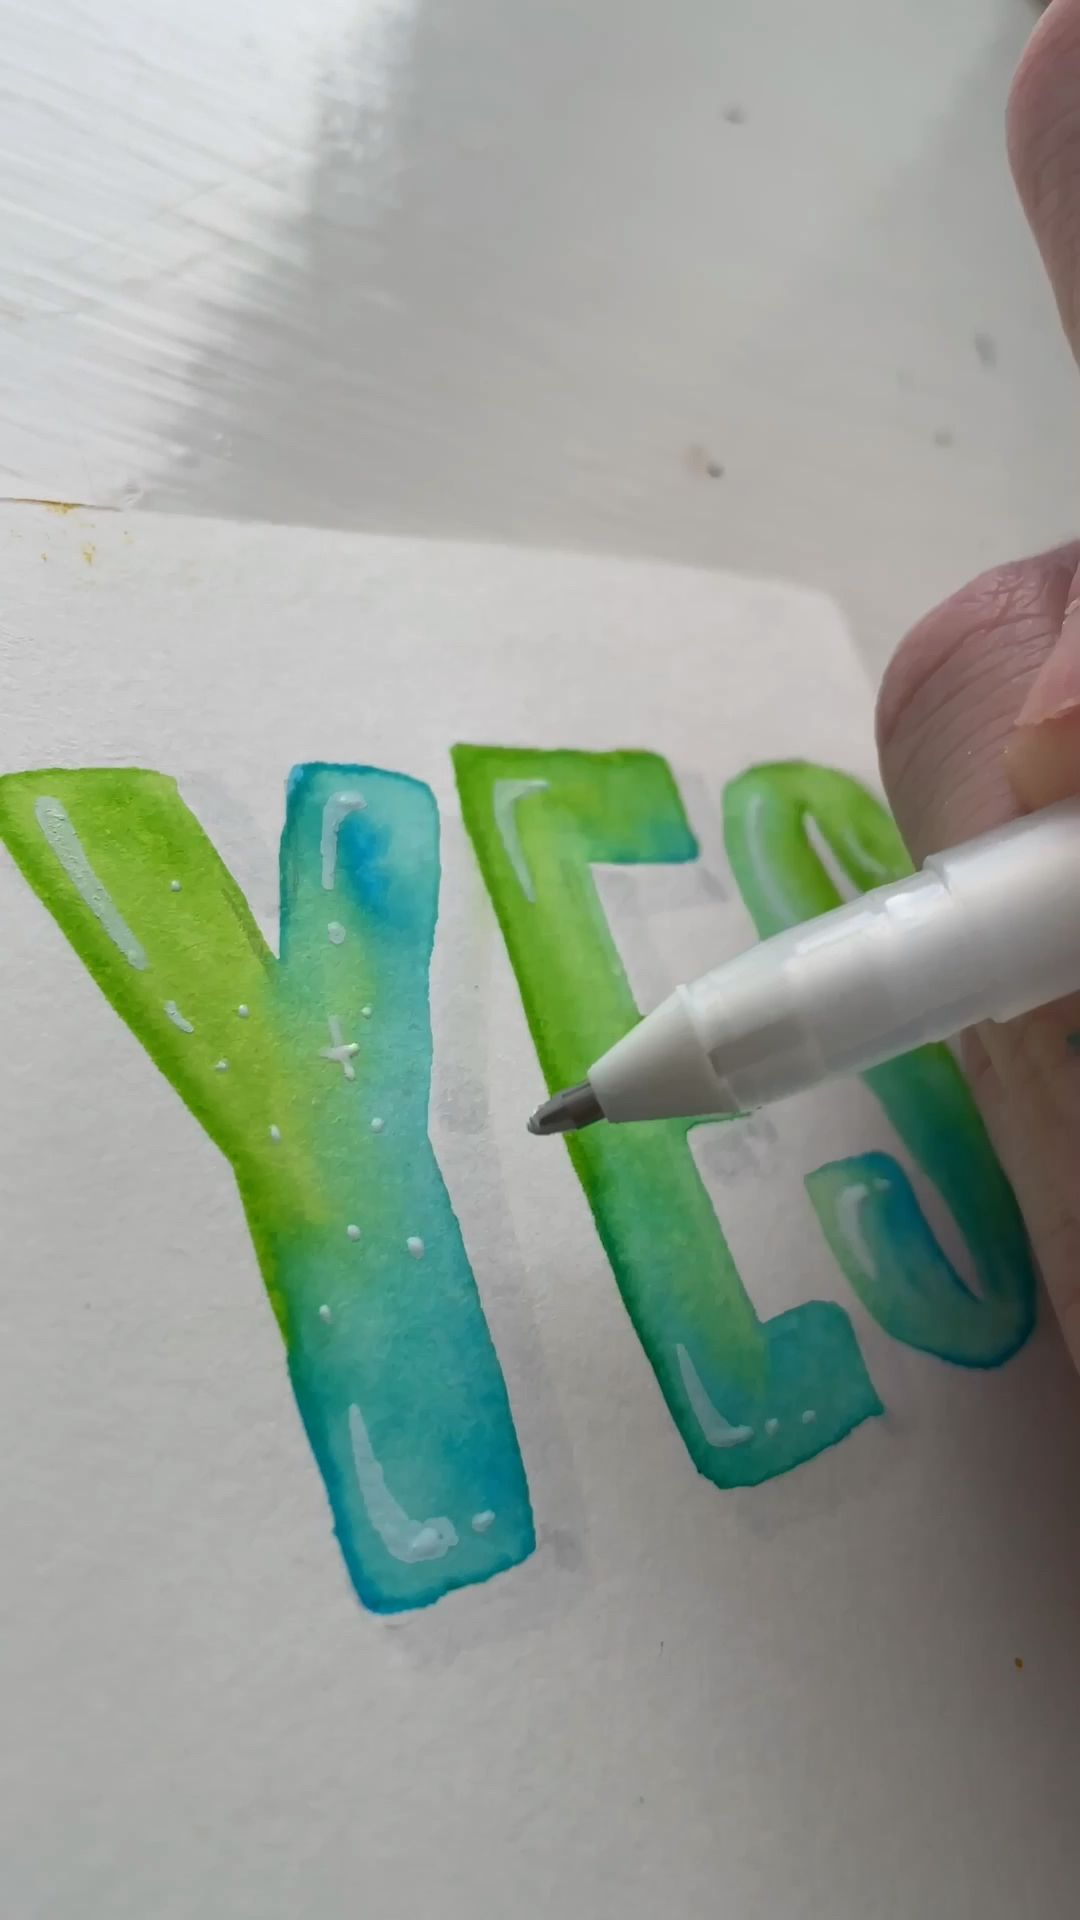 YES TIE-DYE HAND LETTERING AND WATERCOLOR AND CALLIGRAPHY